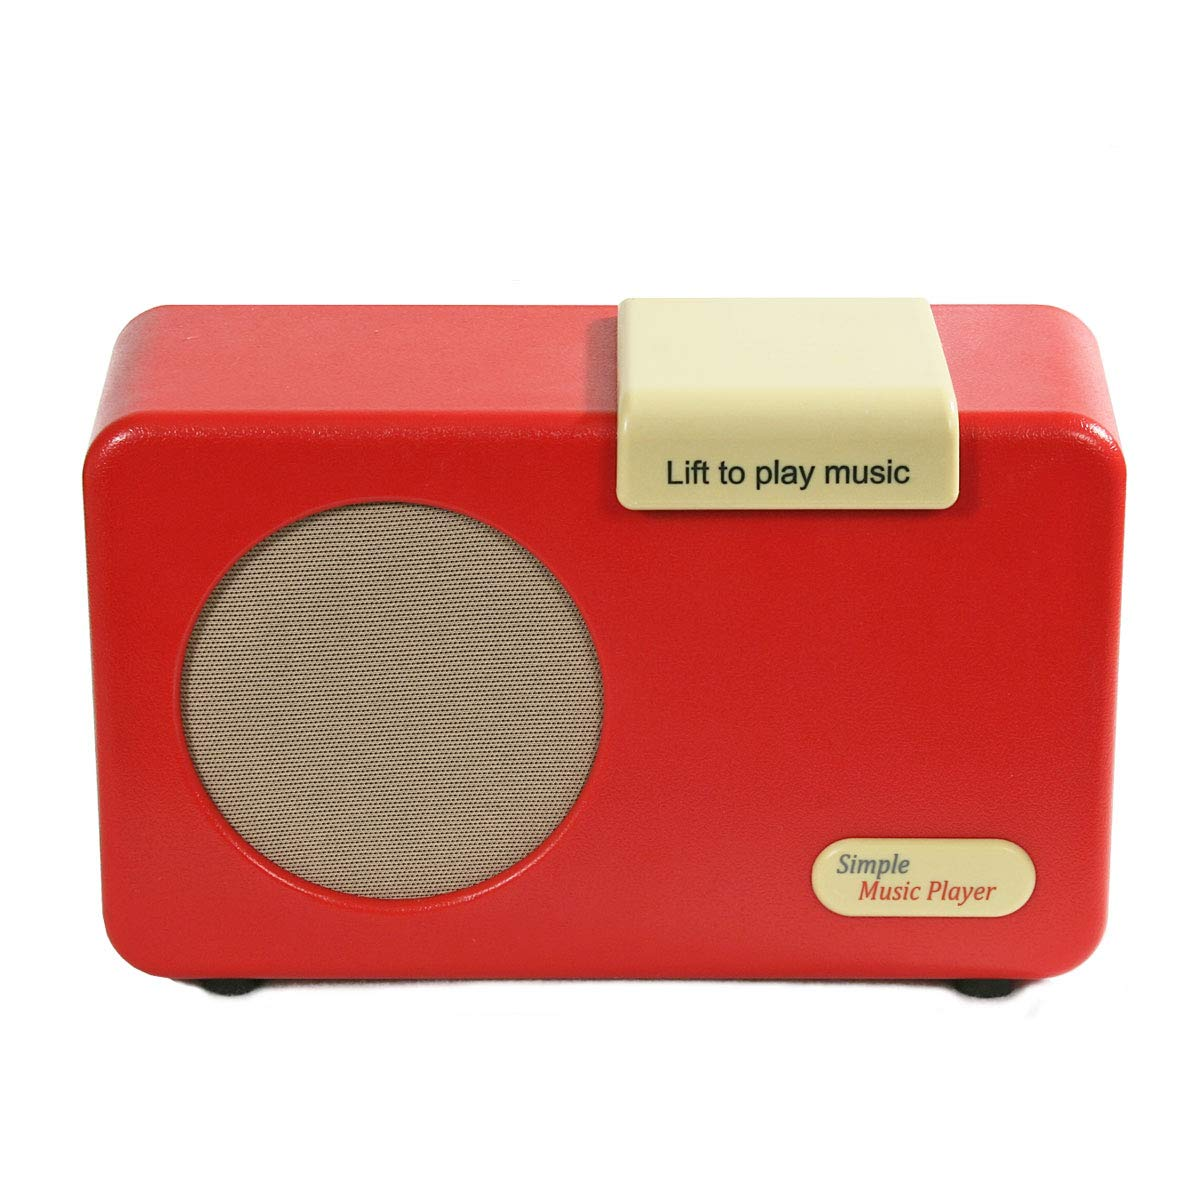 The Simple Music Player - MP3 music box for Alzheimer's and dementia. by 1958LLC